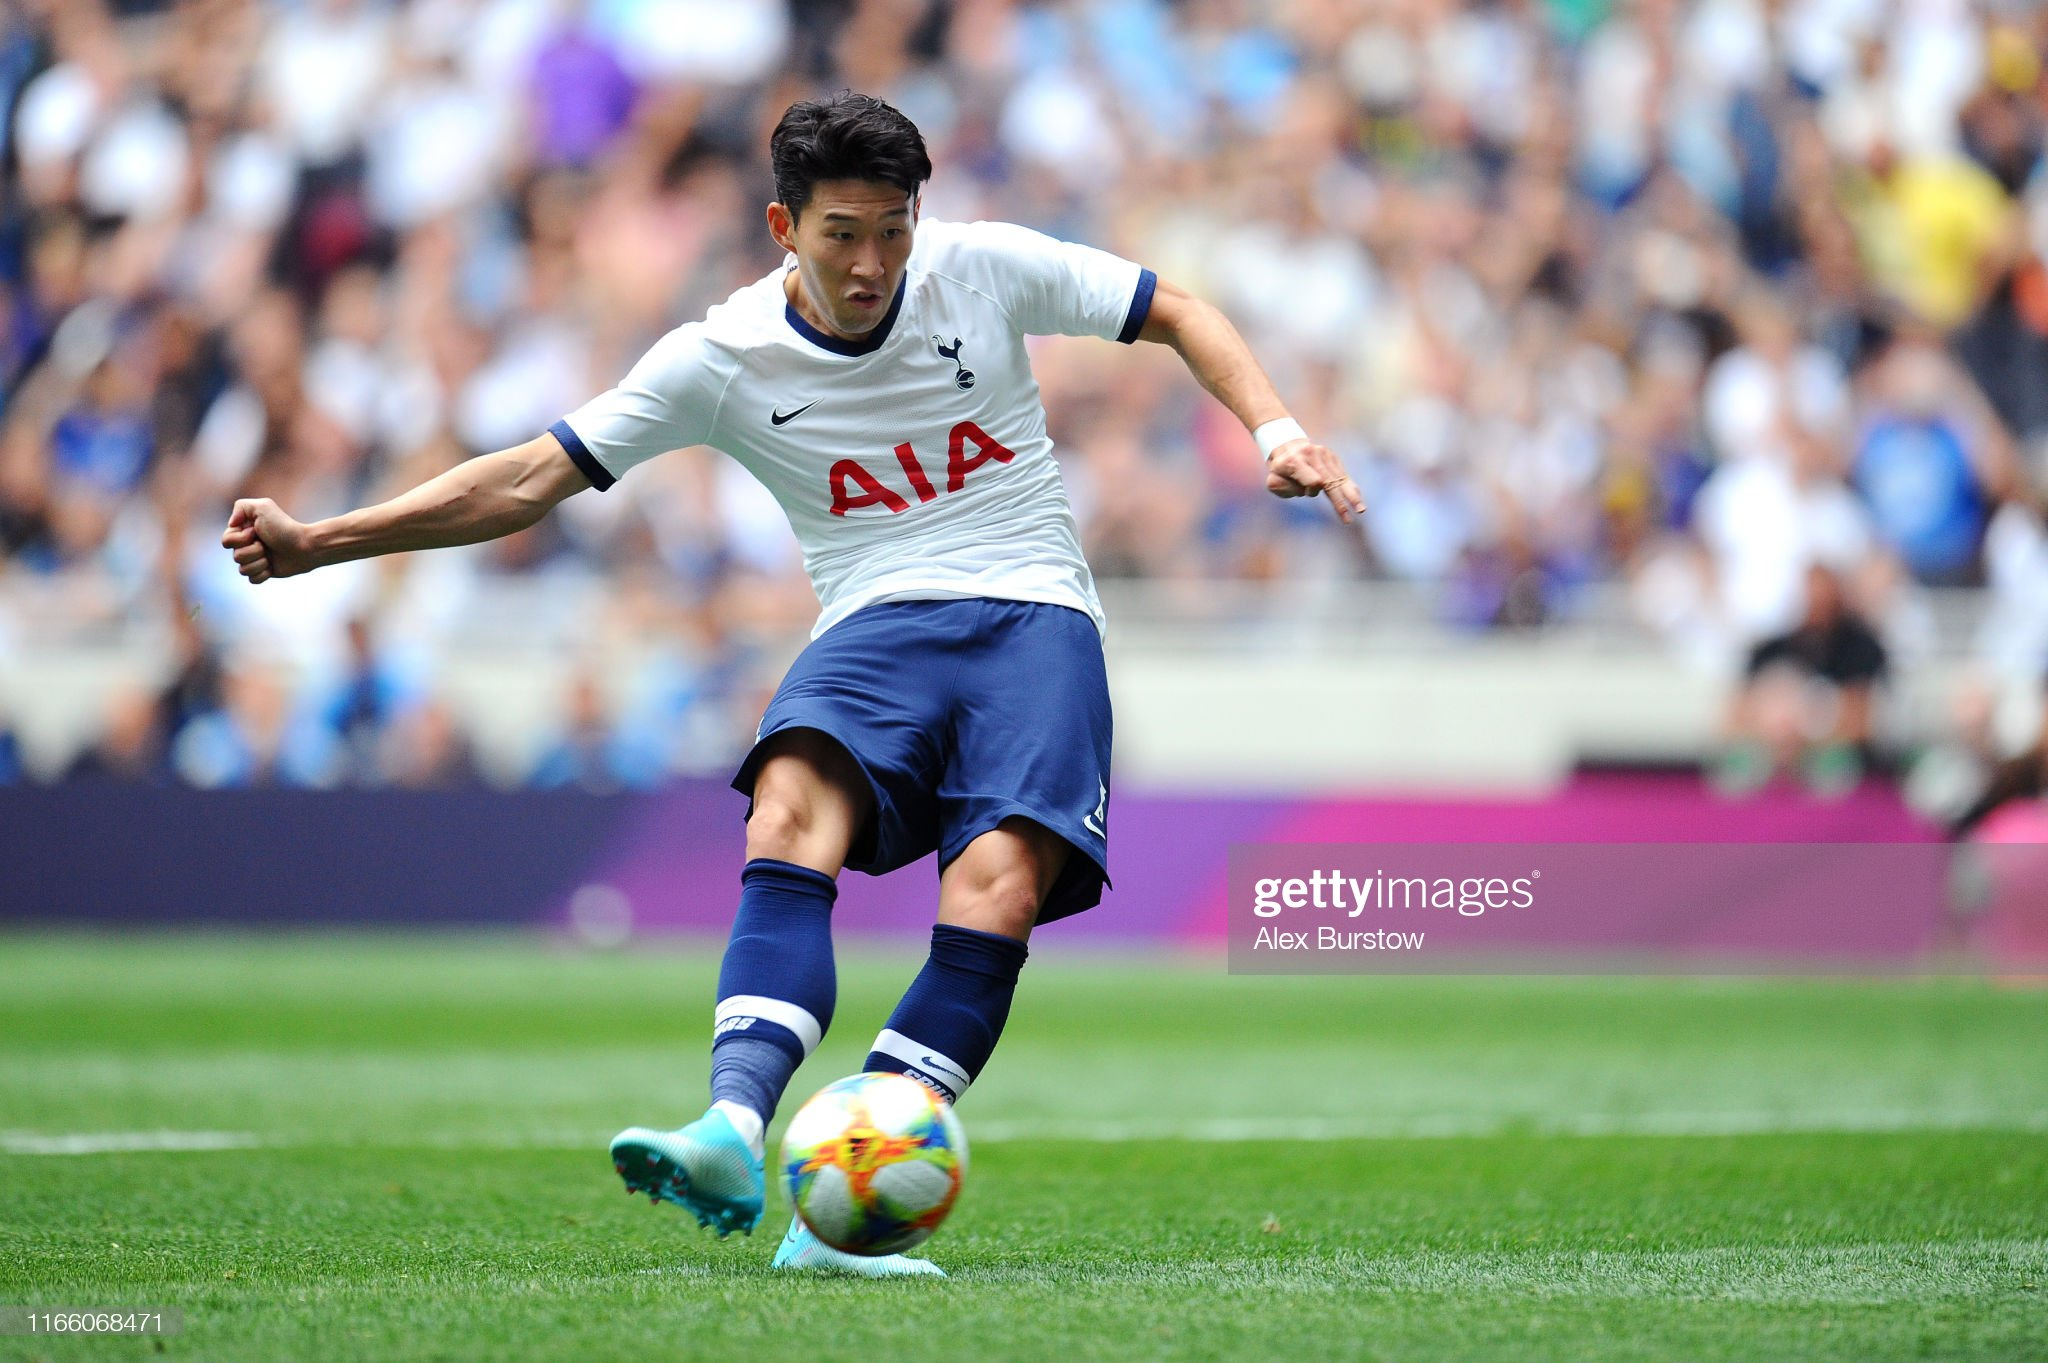 Tottenham Hotspur v FC Internazionale - 2019 International Champions Cup : News Photo